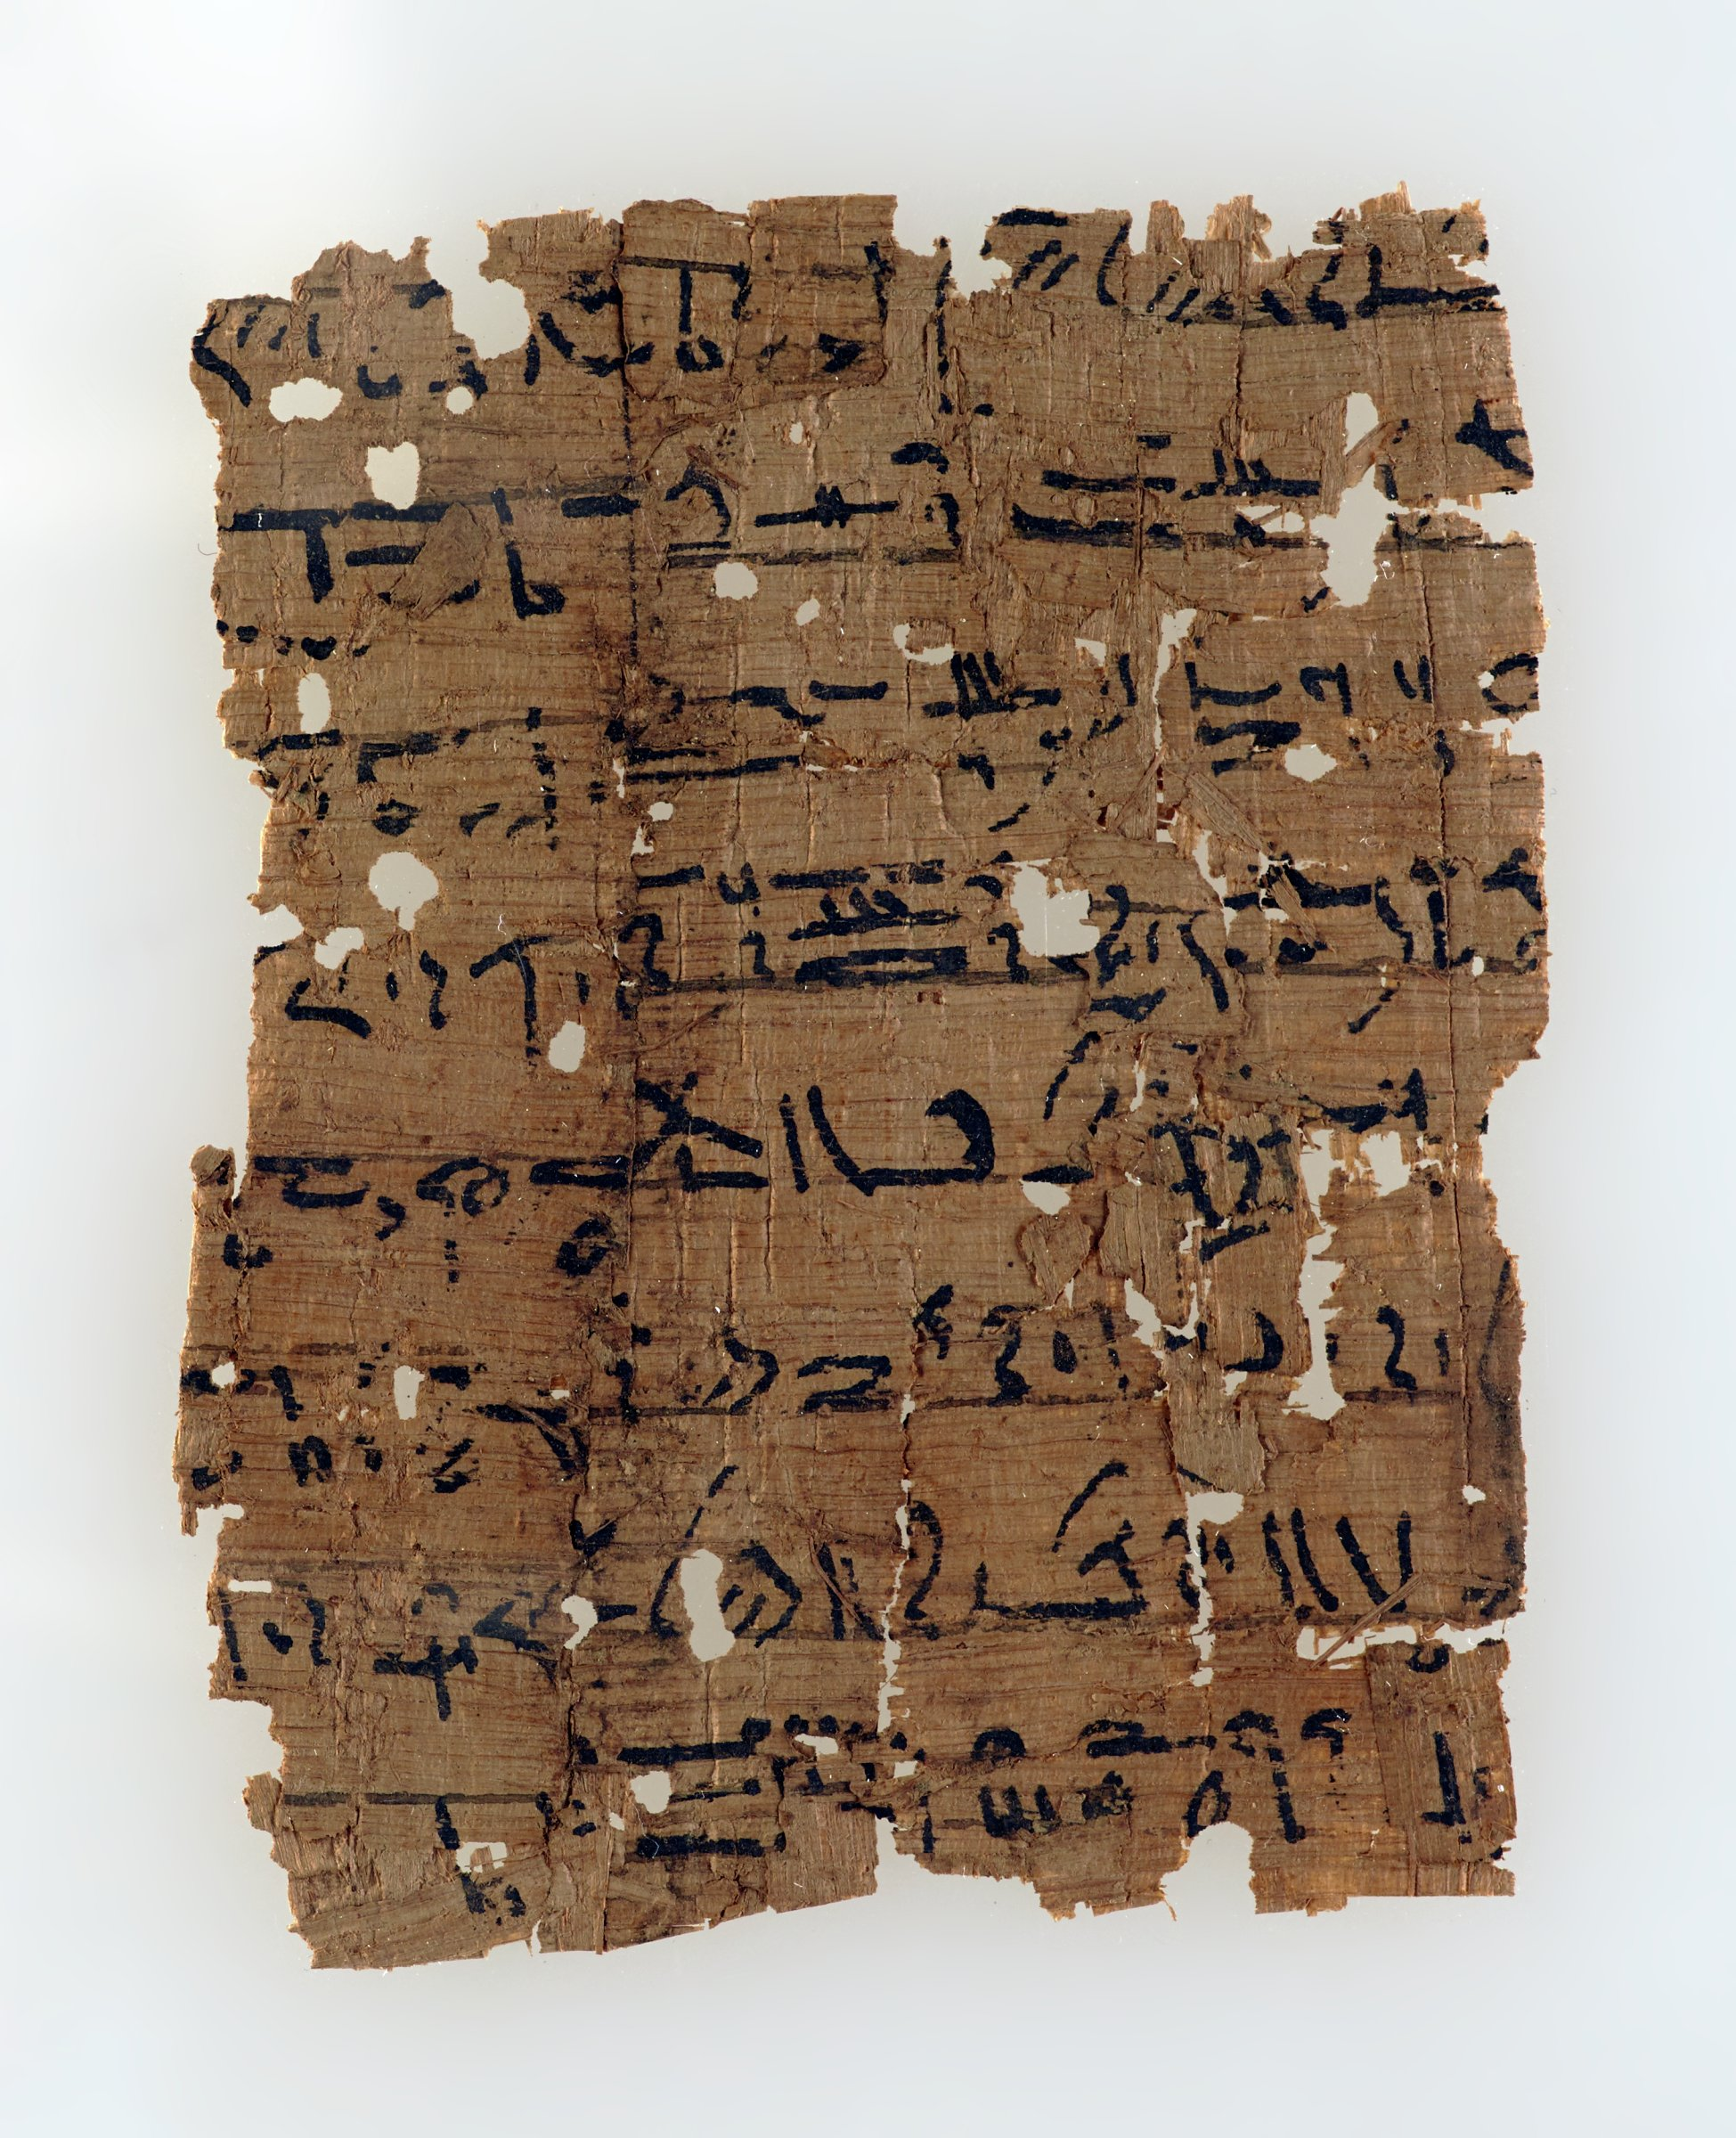 Papyrus witten in a mix of Hieratic and Demotic script. A piece on the left has been joined incorrectly (upside down) and some stray fragments on the surface of the right side are also obscuring the view of the text making an identification of the text difficult. It appears to contain a magical-medical text.